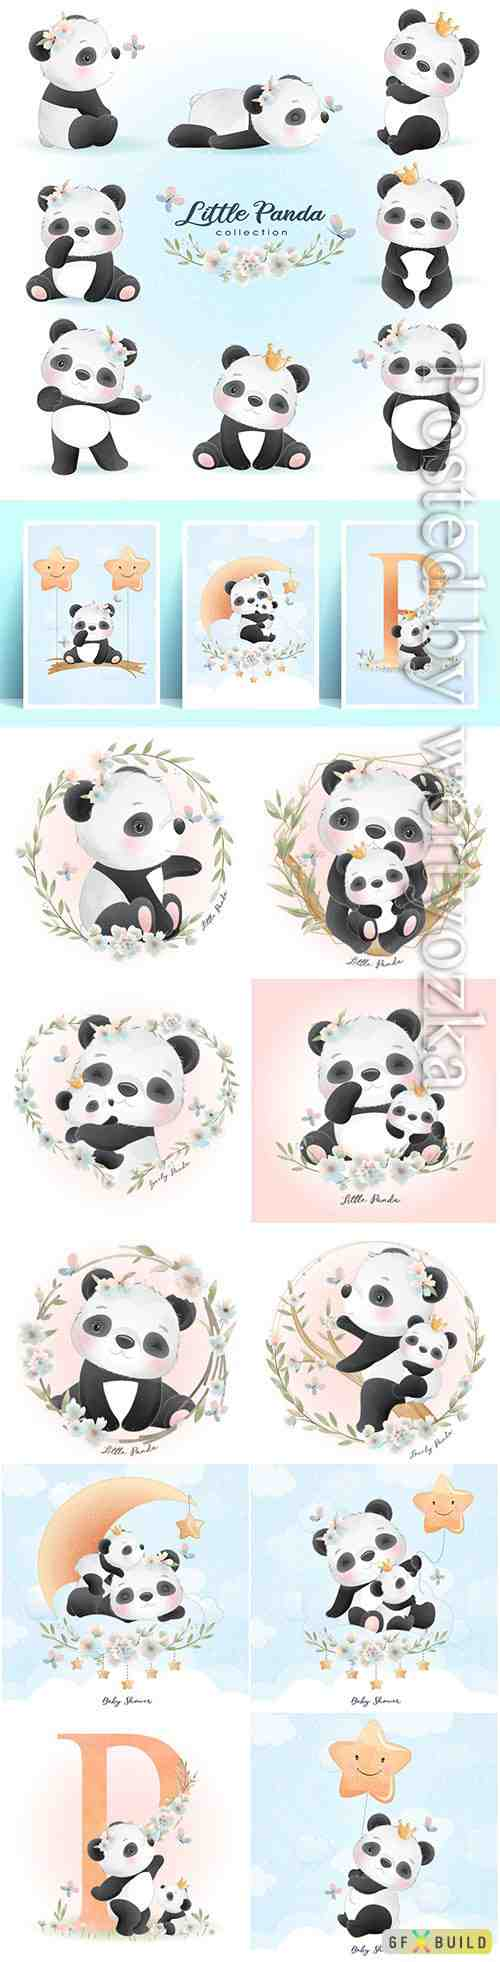 Cute panda with floral illustration premium vector